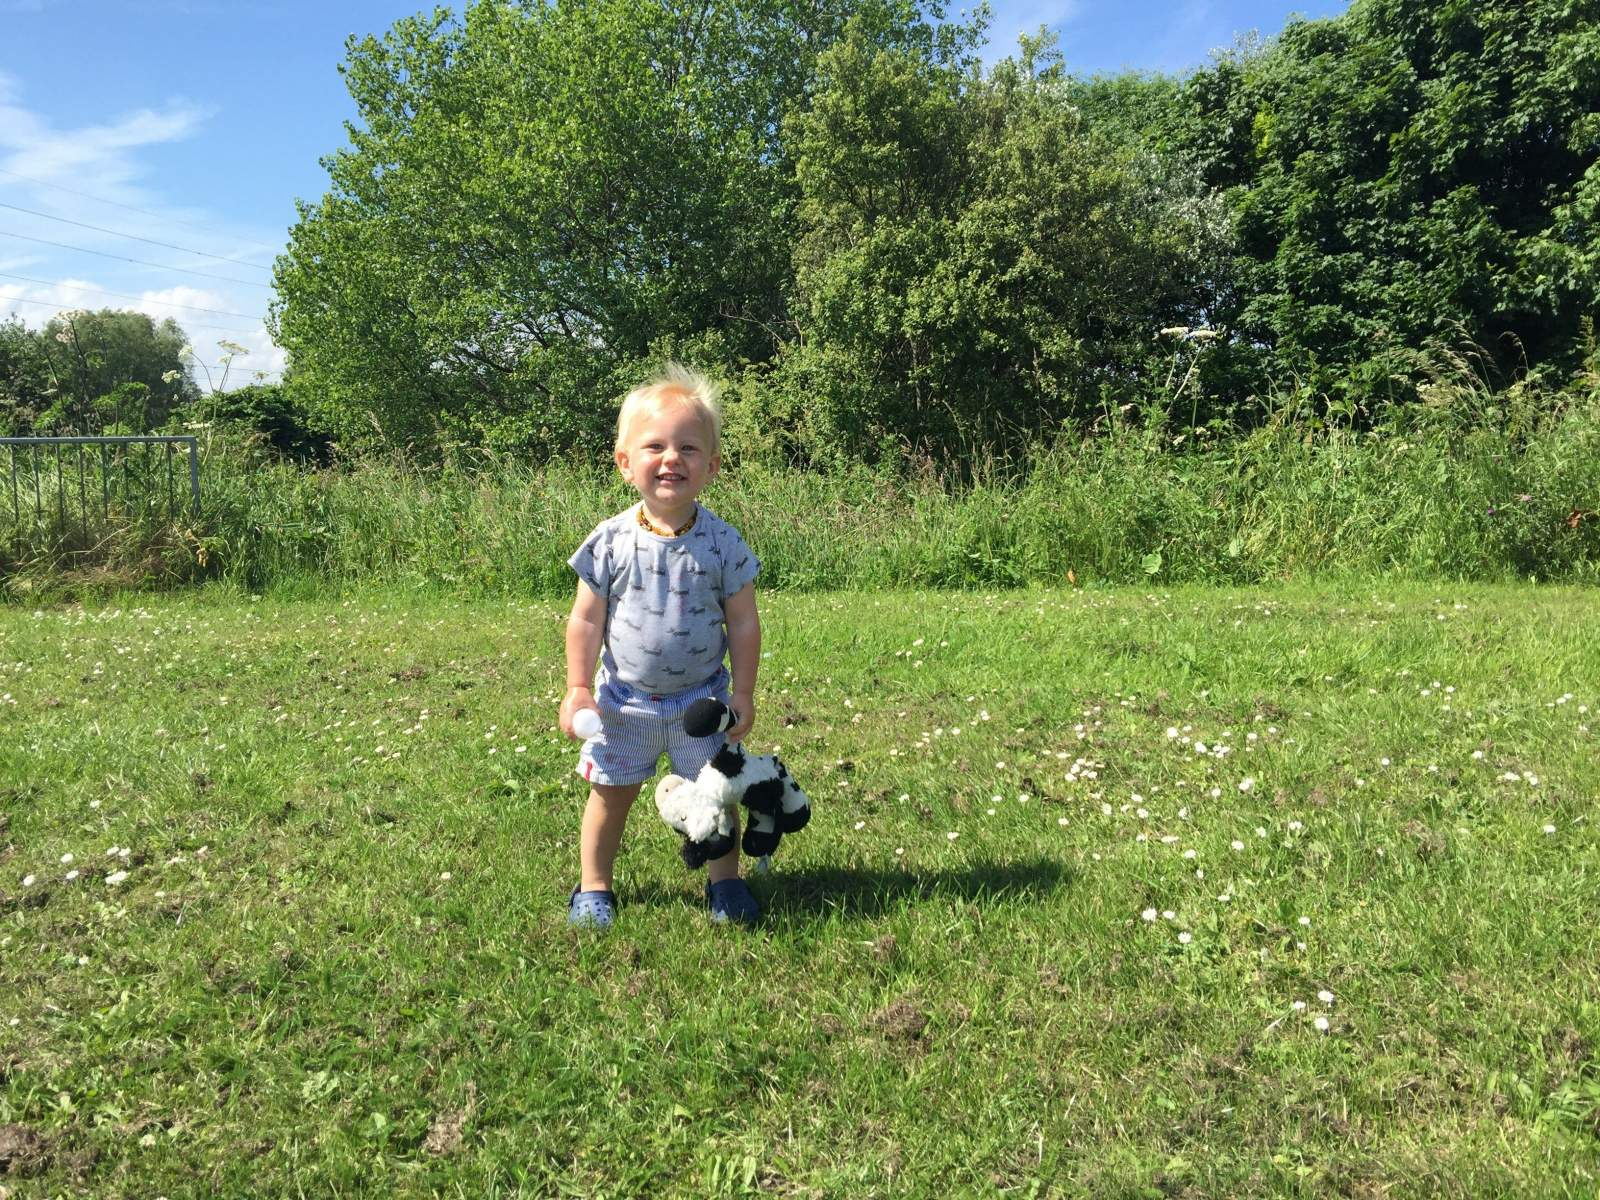 enjoying the summer with robinsons squashd outdoors